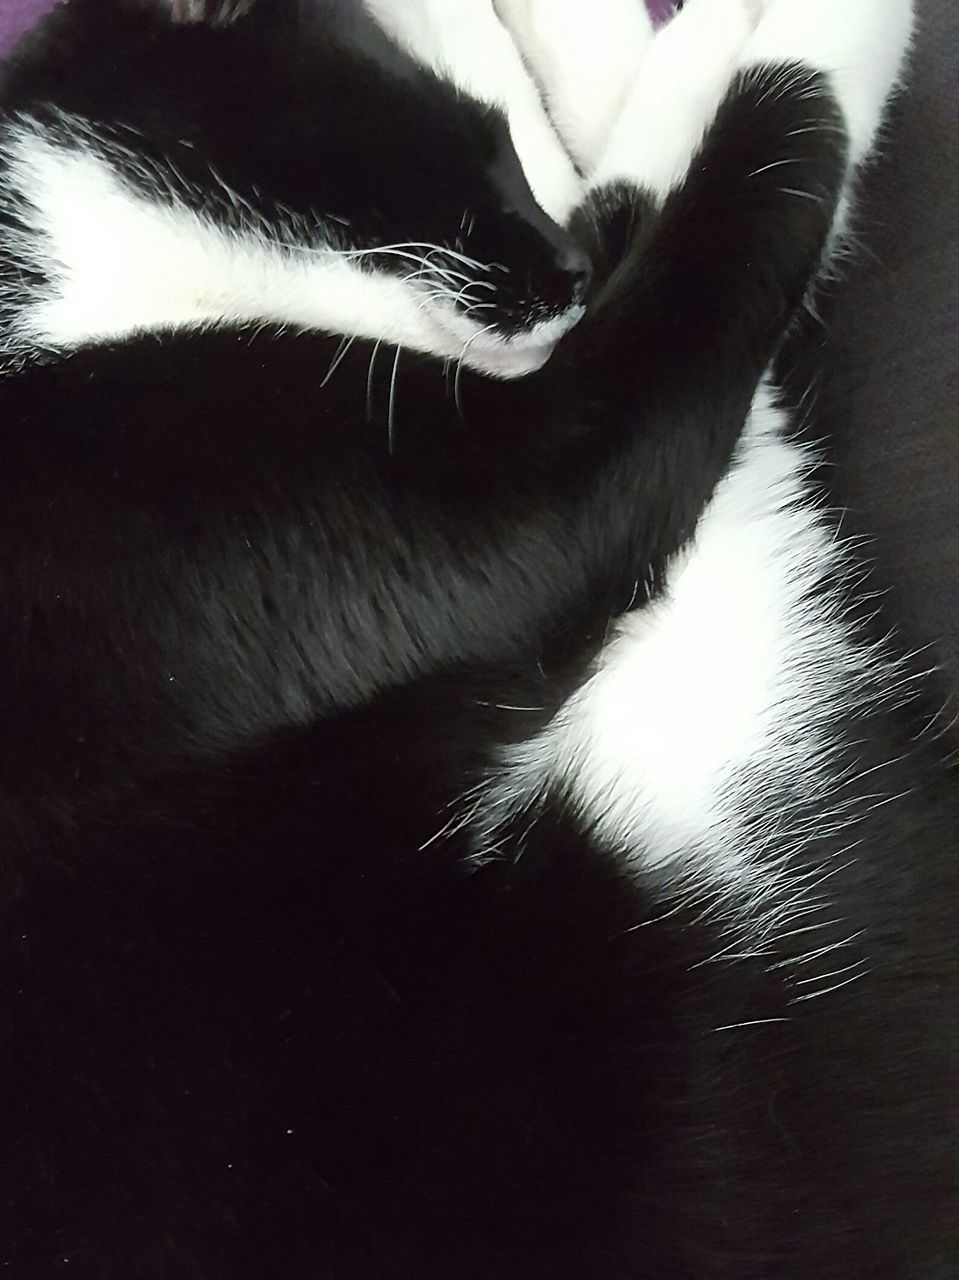 pets, domestic animals, one animal, animal themes, domestic cat, mammal, cat, indoors, feline, close-up, no people, day